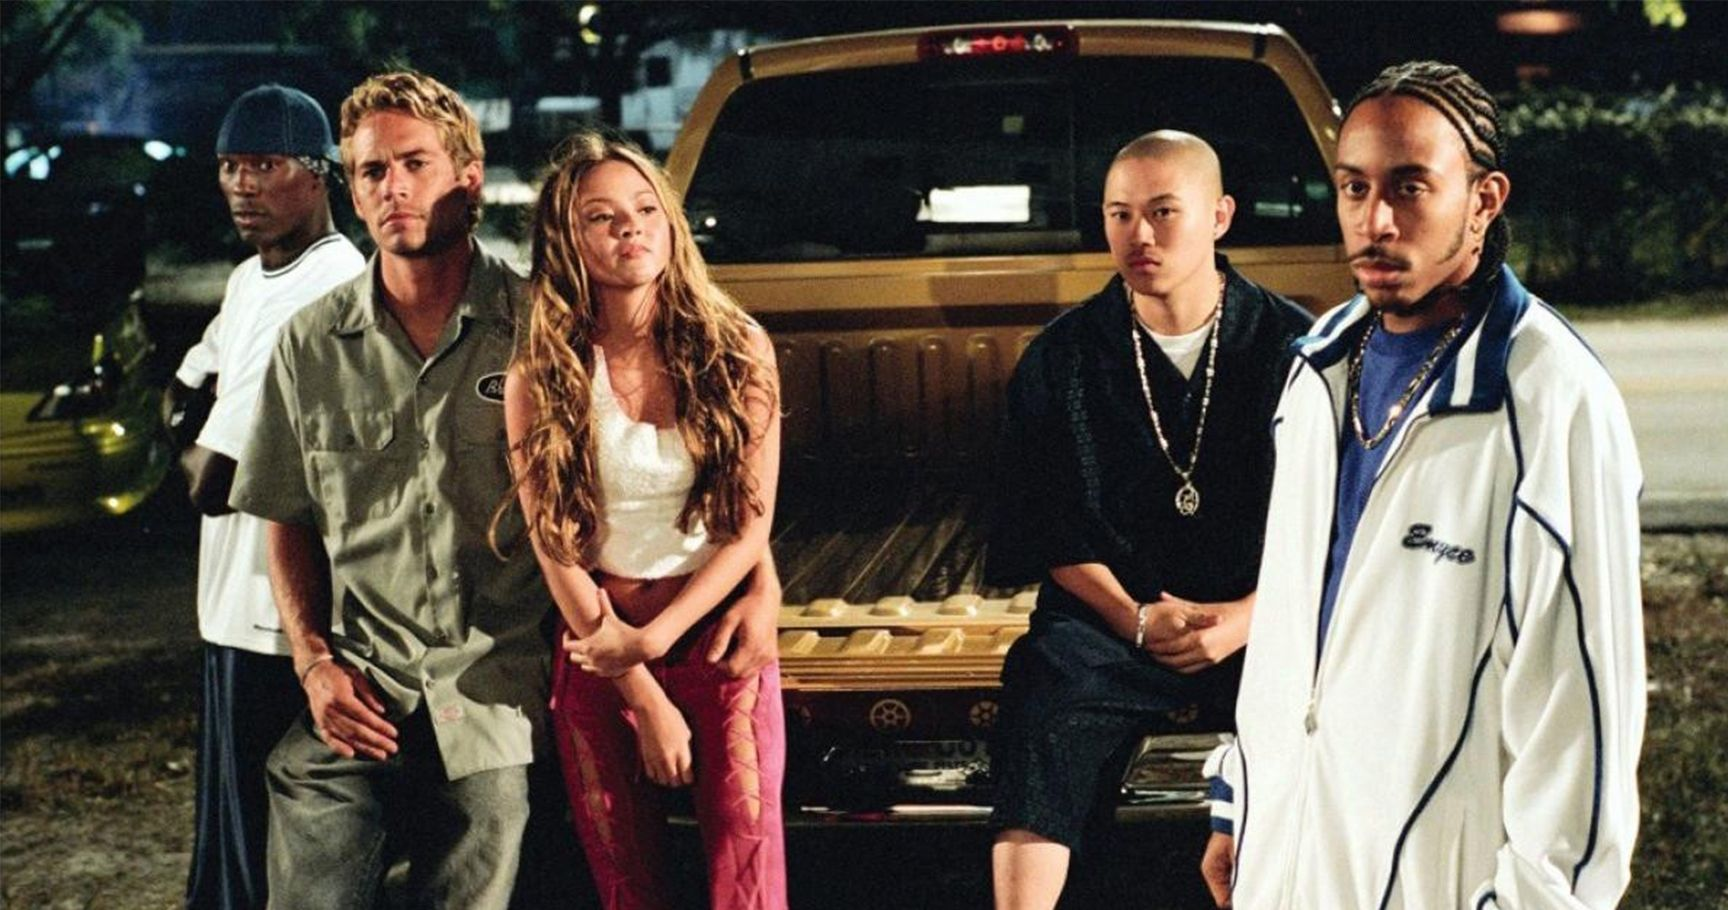 How Well Do You Know 'The Fast and the Furious' Films?